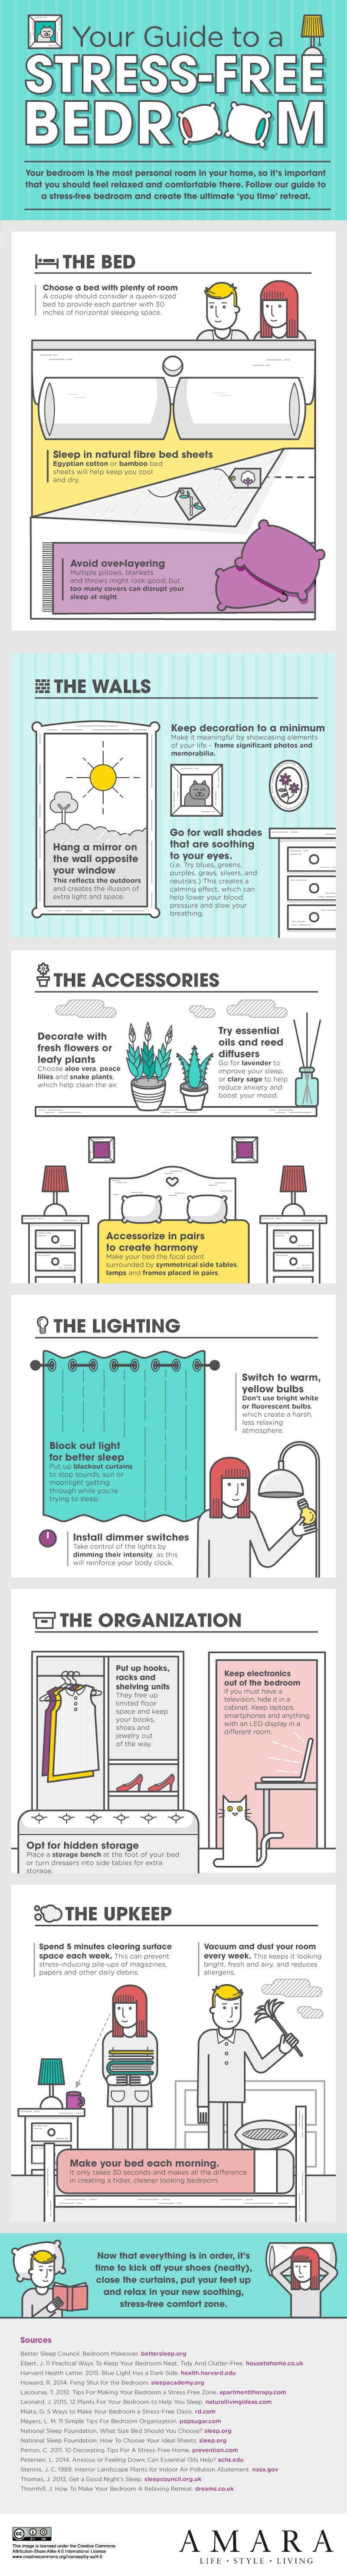 bedroom cleaning decorating household infographics sleep